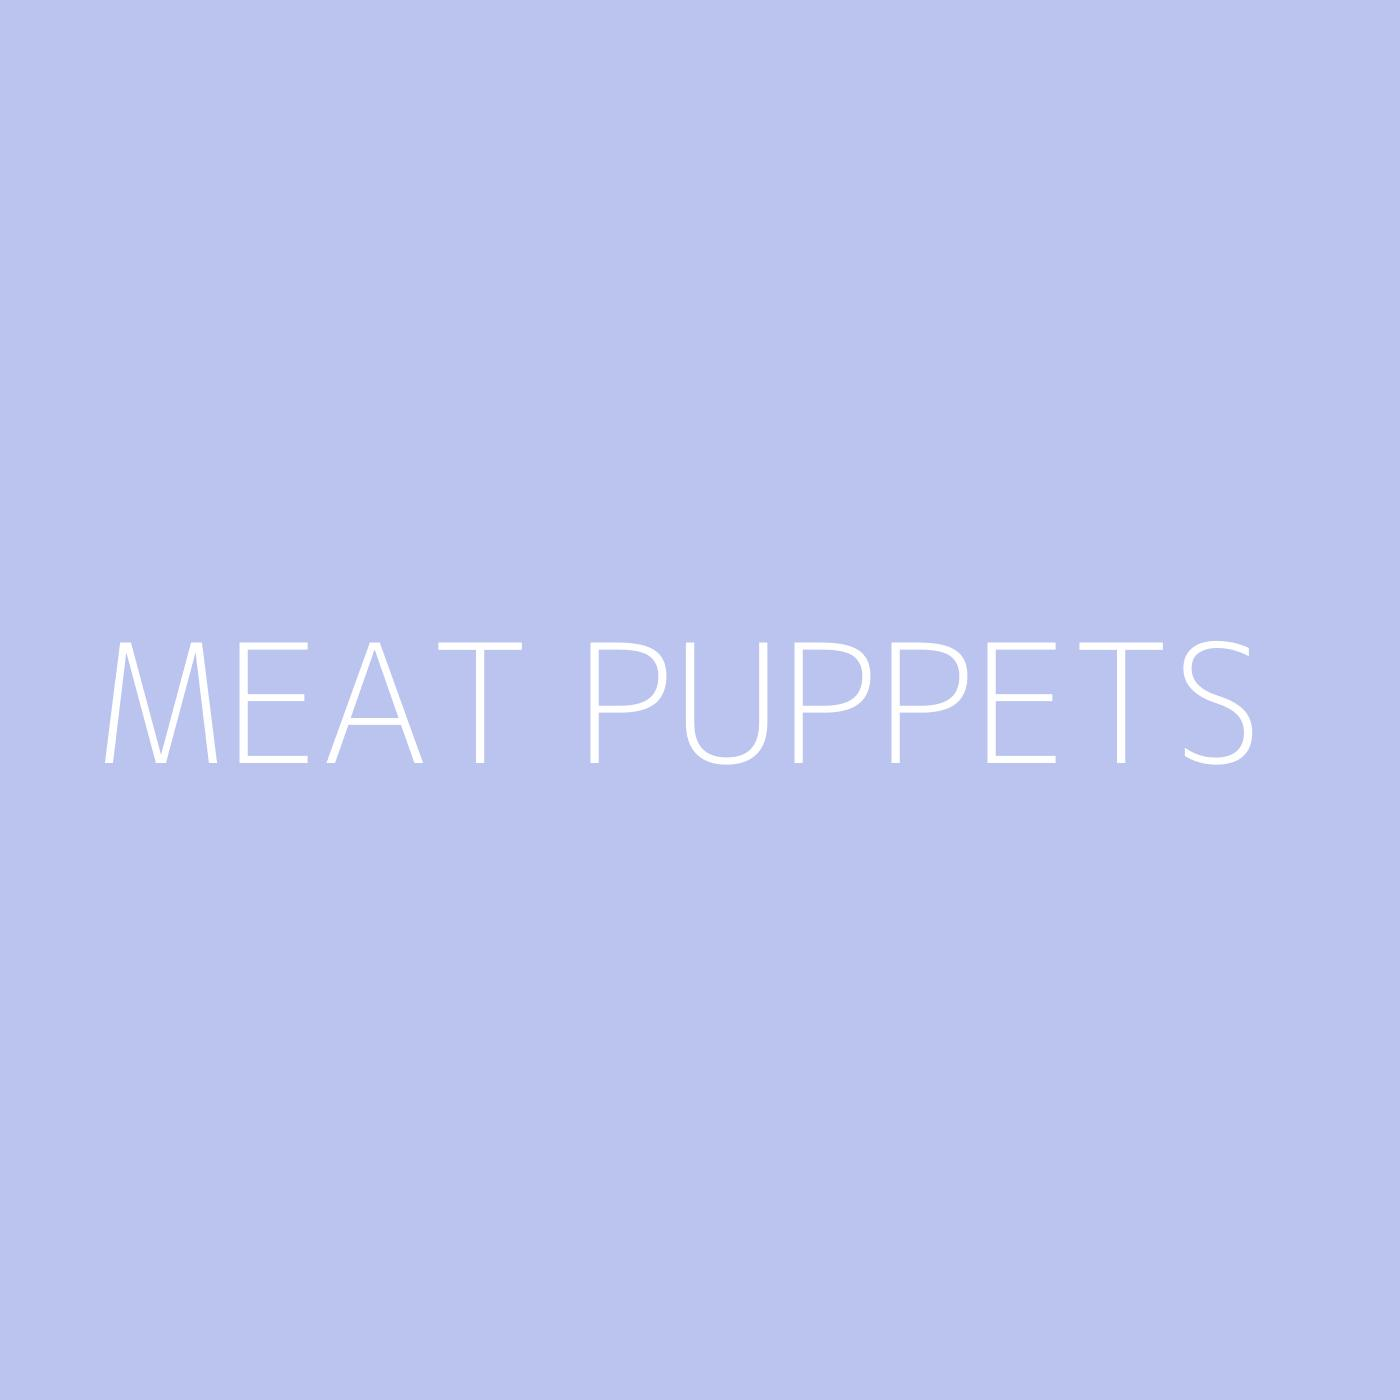 Meat Puppets Playlist Artwork